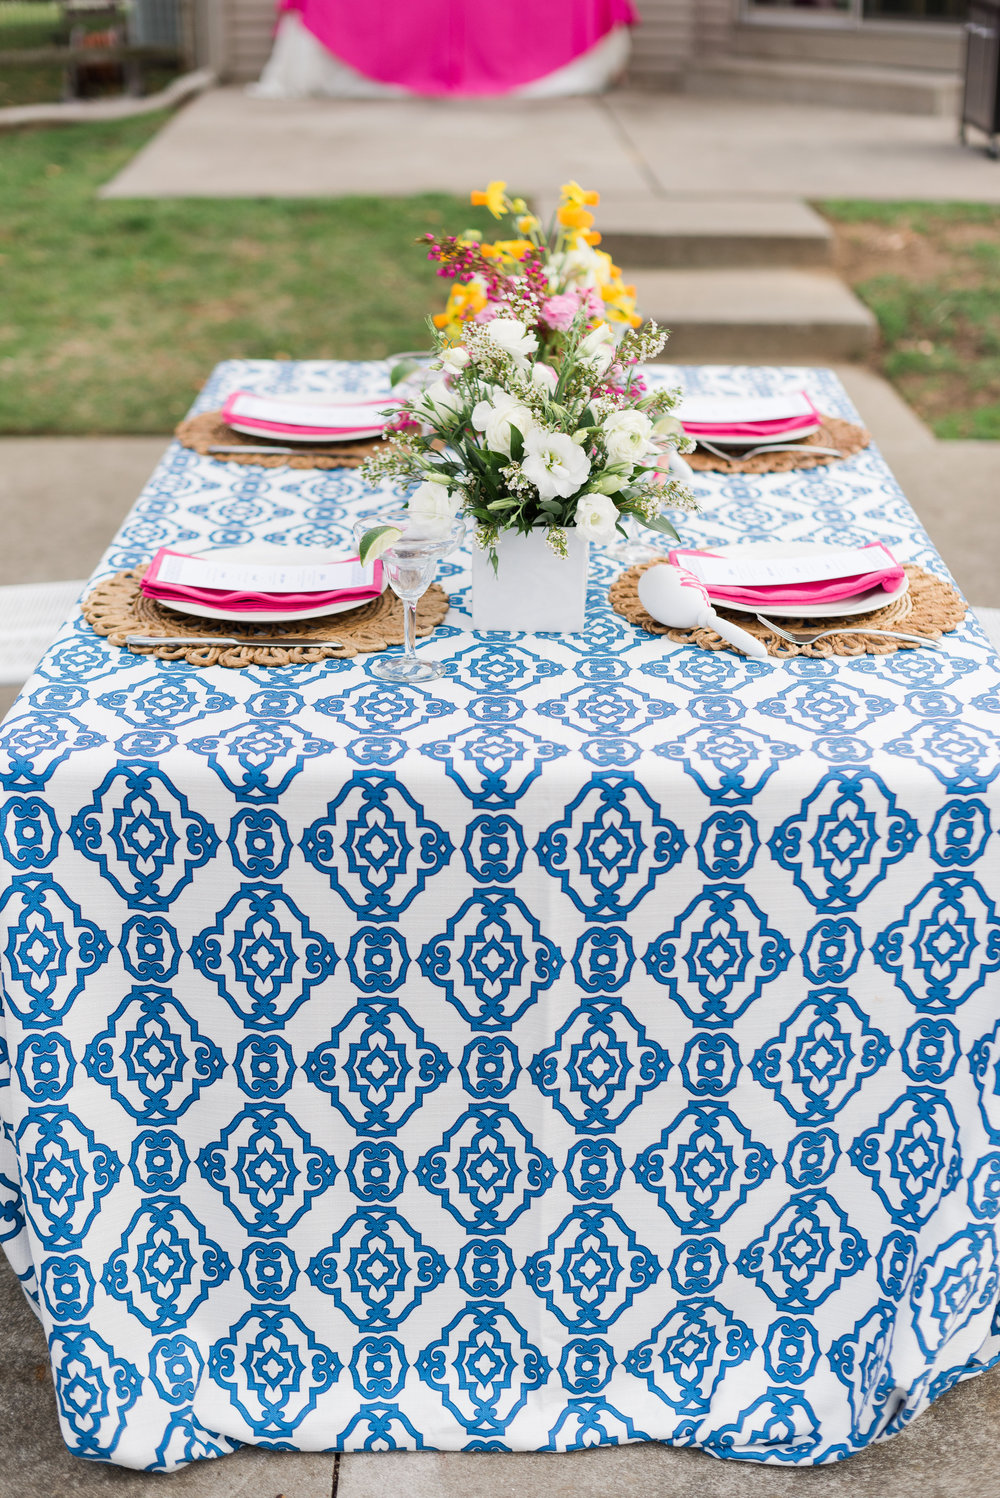 Fiesta-Party-Inspiration-by-Event-Prep-Cassandra-Clair-Photograpy-Amanda-Collins-22.jpg